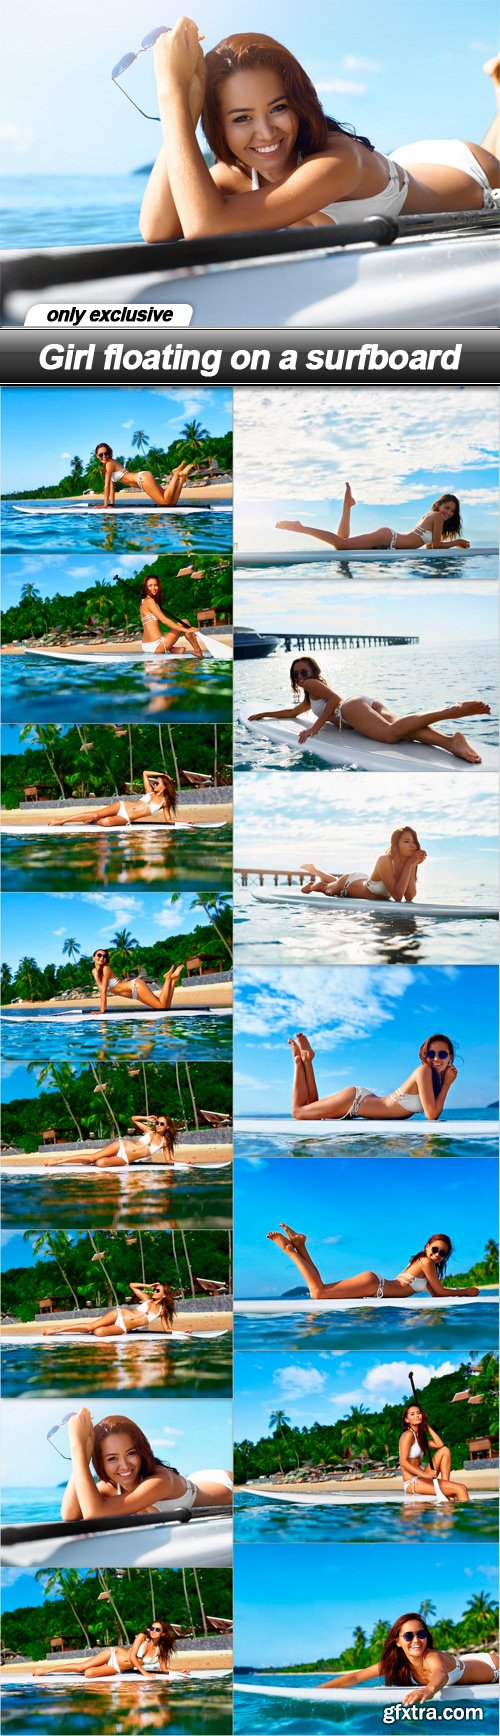 Girl floating on a surfboard - 15 UHQ JPEG